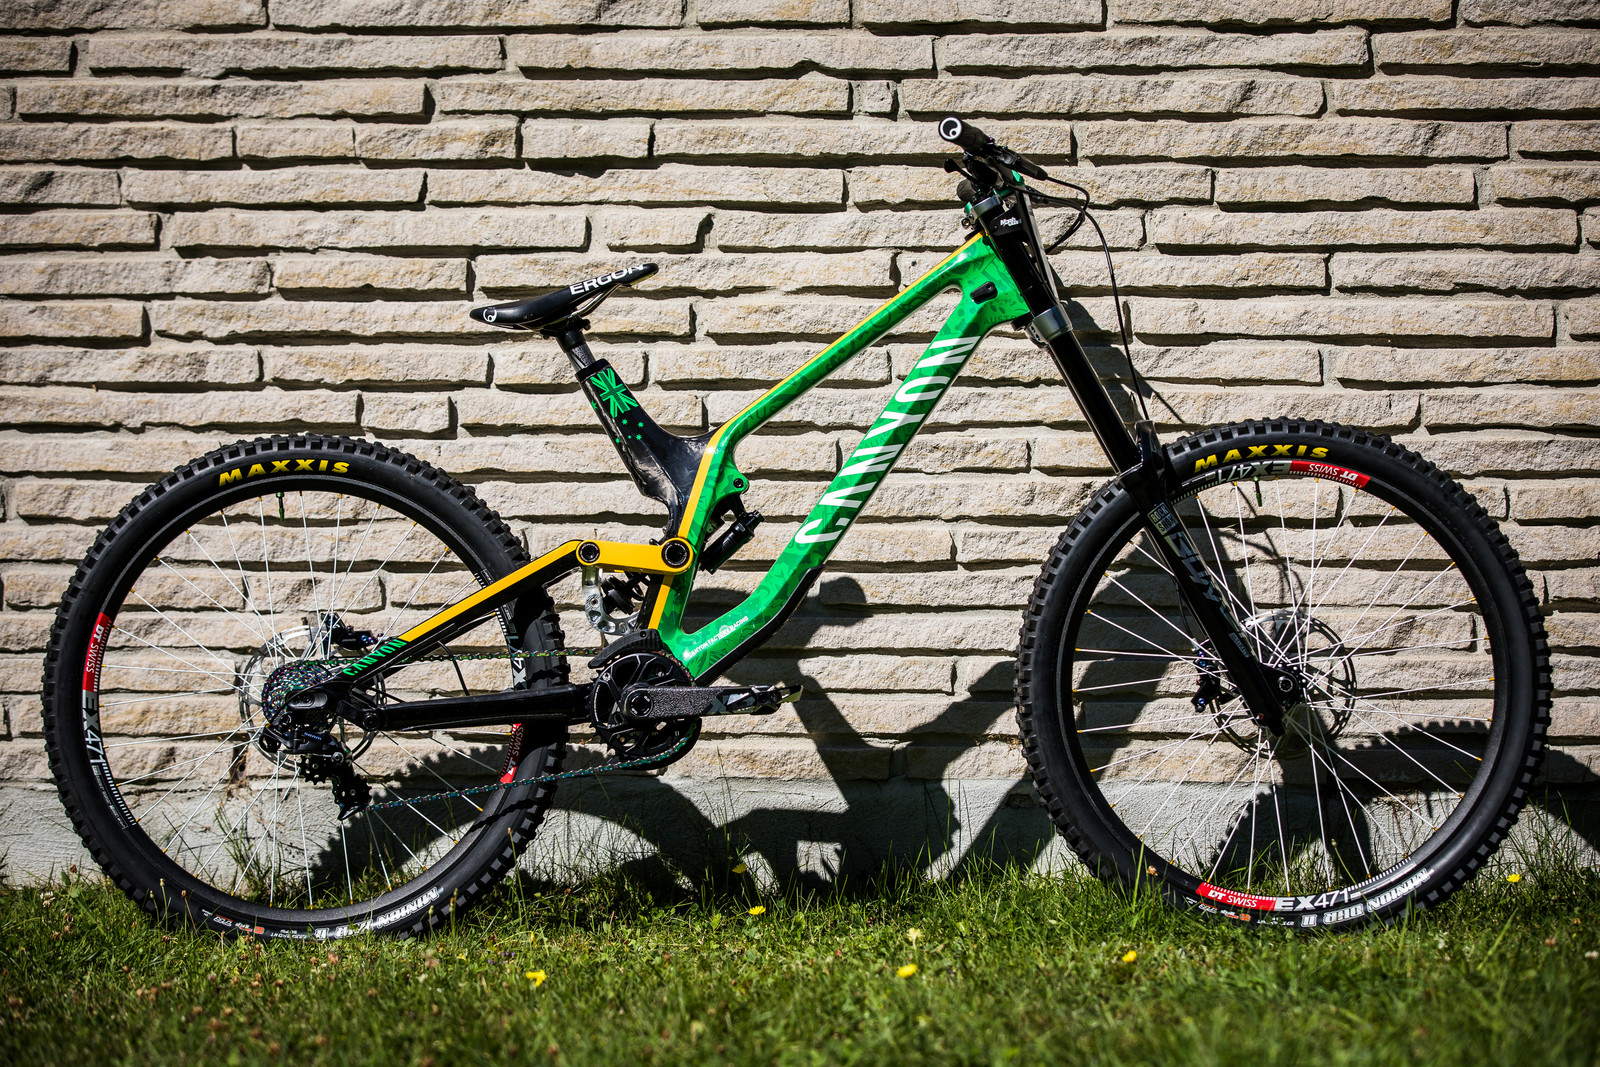 Troy Brosnan's Canyon Sender at 2019 Worlds MSA - Troy Brosnan's Canyon Sender at 2019 Worlds MSA - Mountain Biking Pictures - Vital MTB